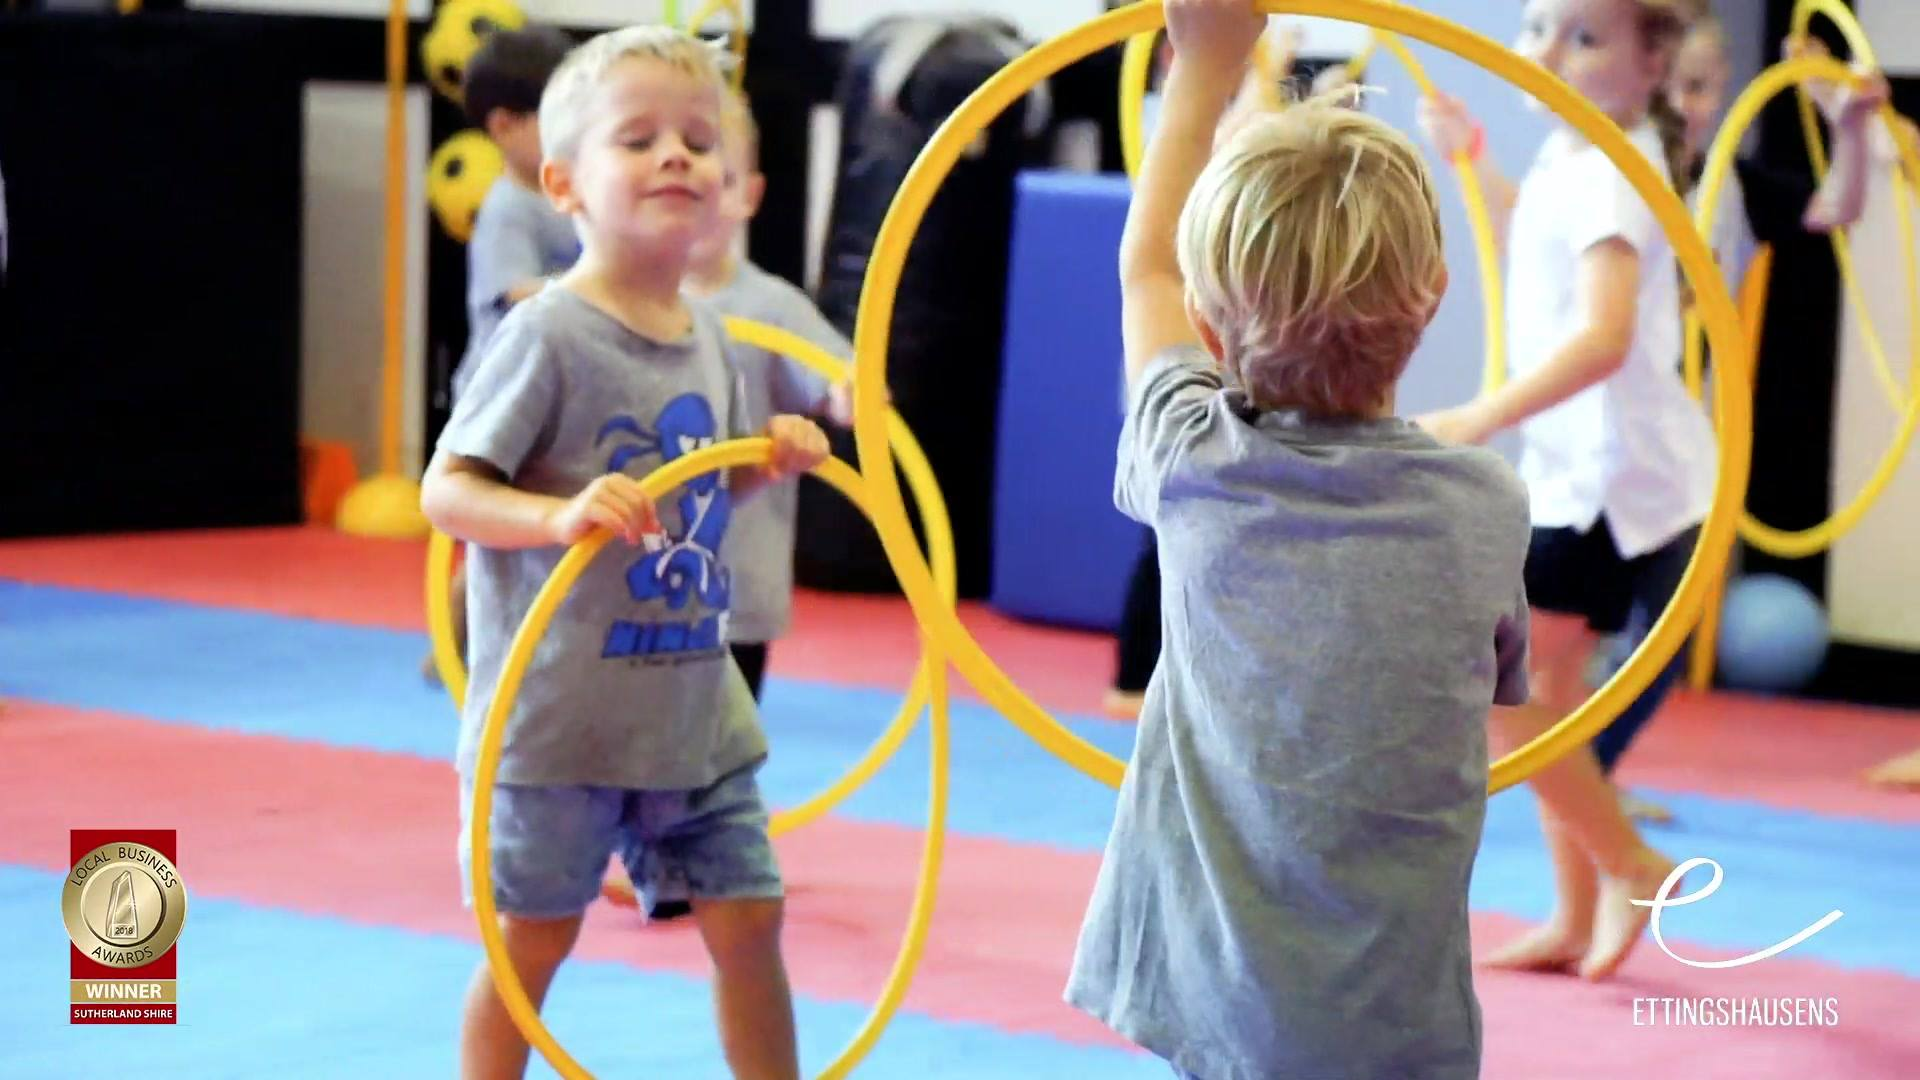 We had so much fun in our Ninja Stars preschool classes this term! If you have a little one aged 3 to 5 years old, come and try Ninja Stars on Wednesday April 17 and enrol for Term 2! 😄💪🏼   🗓 Wednesday April 17 ⏰ 9.30AM - 10.15AM 📍 Ettingshausens, 11